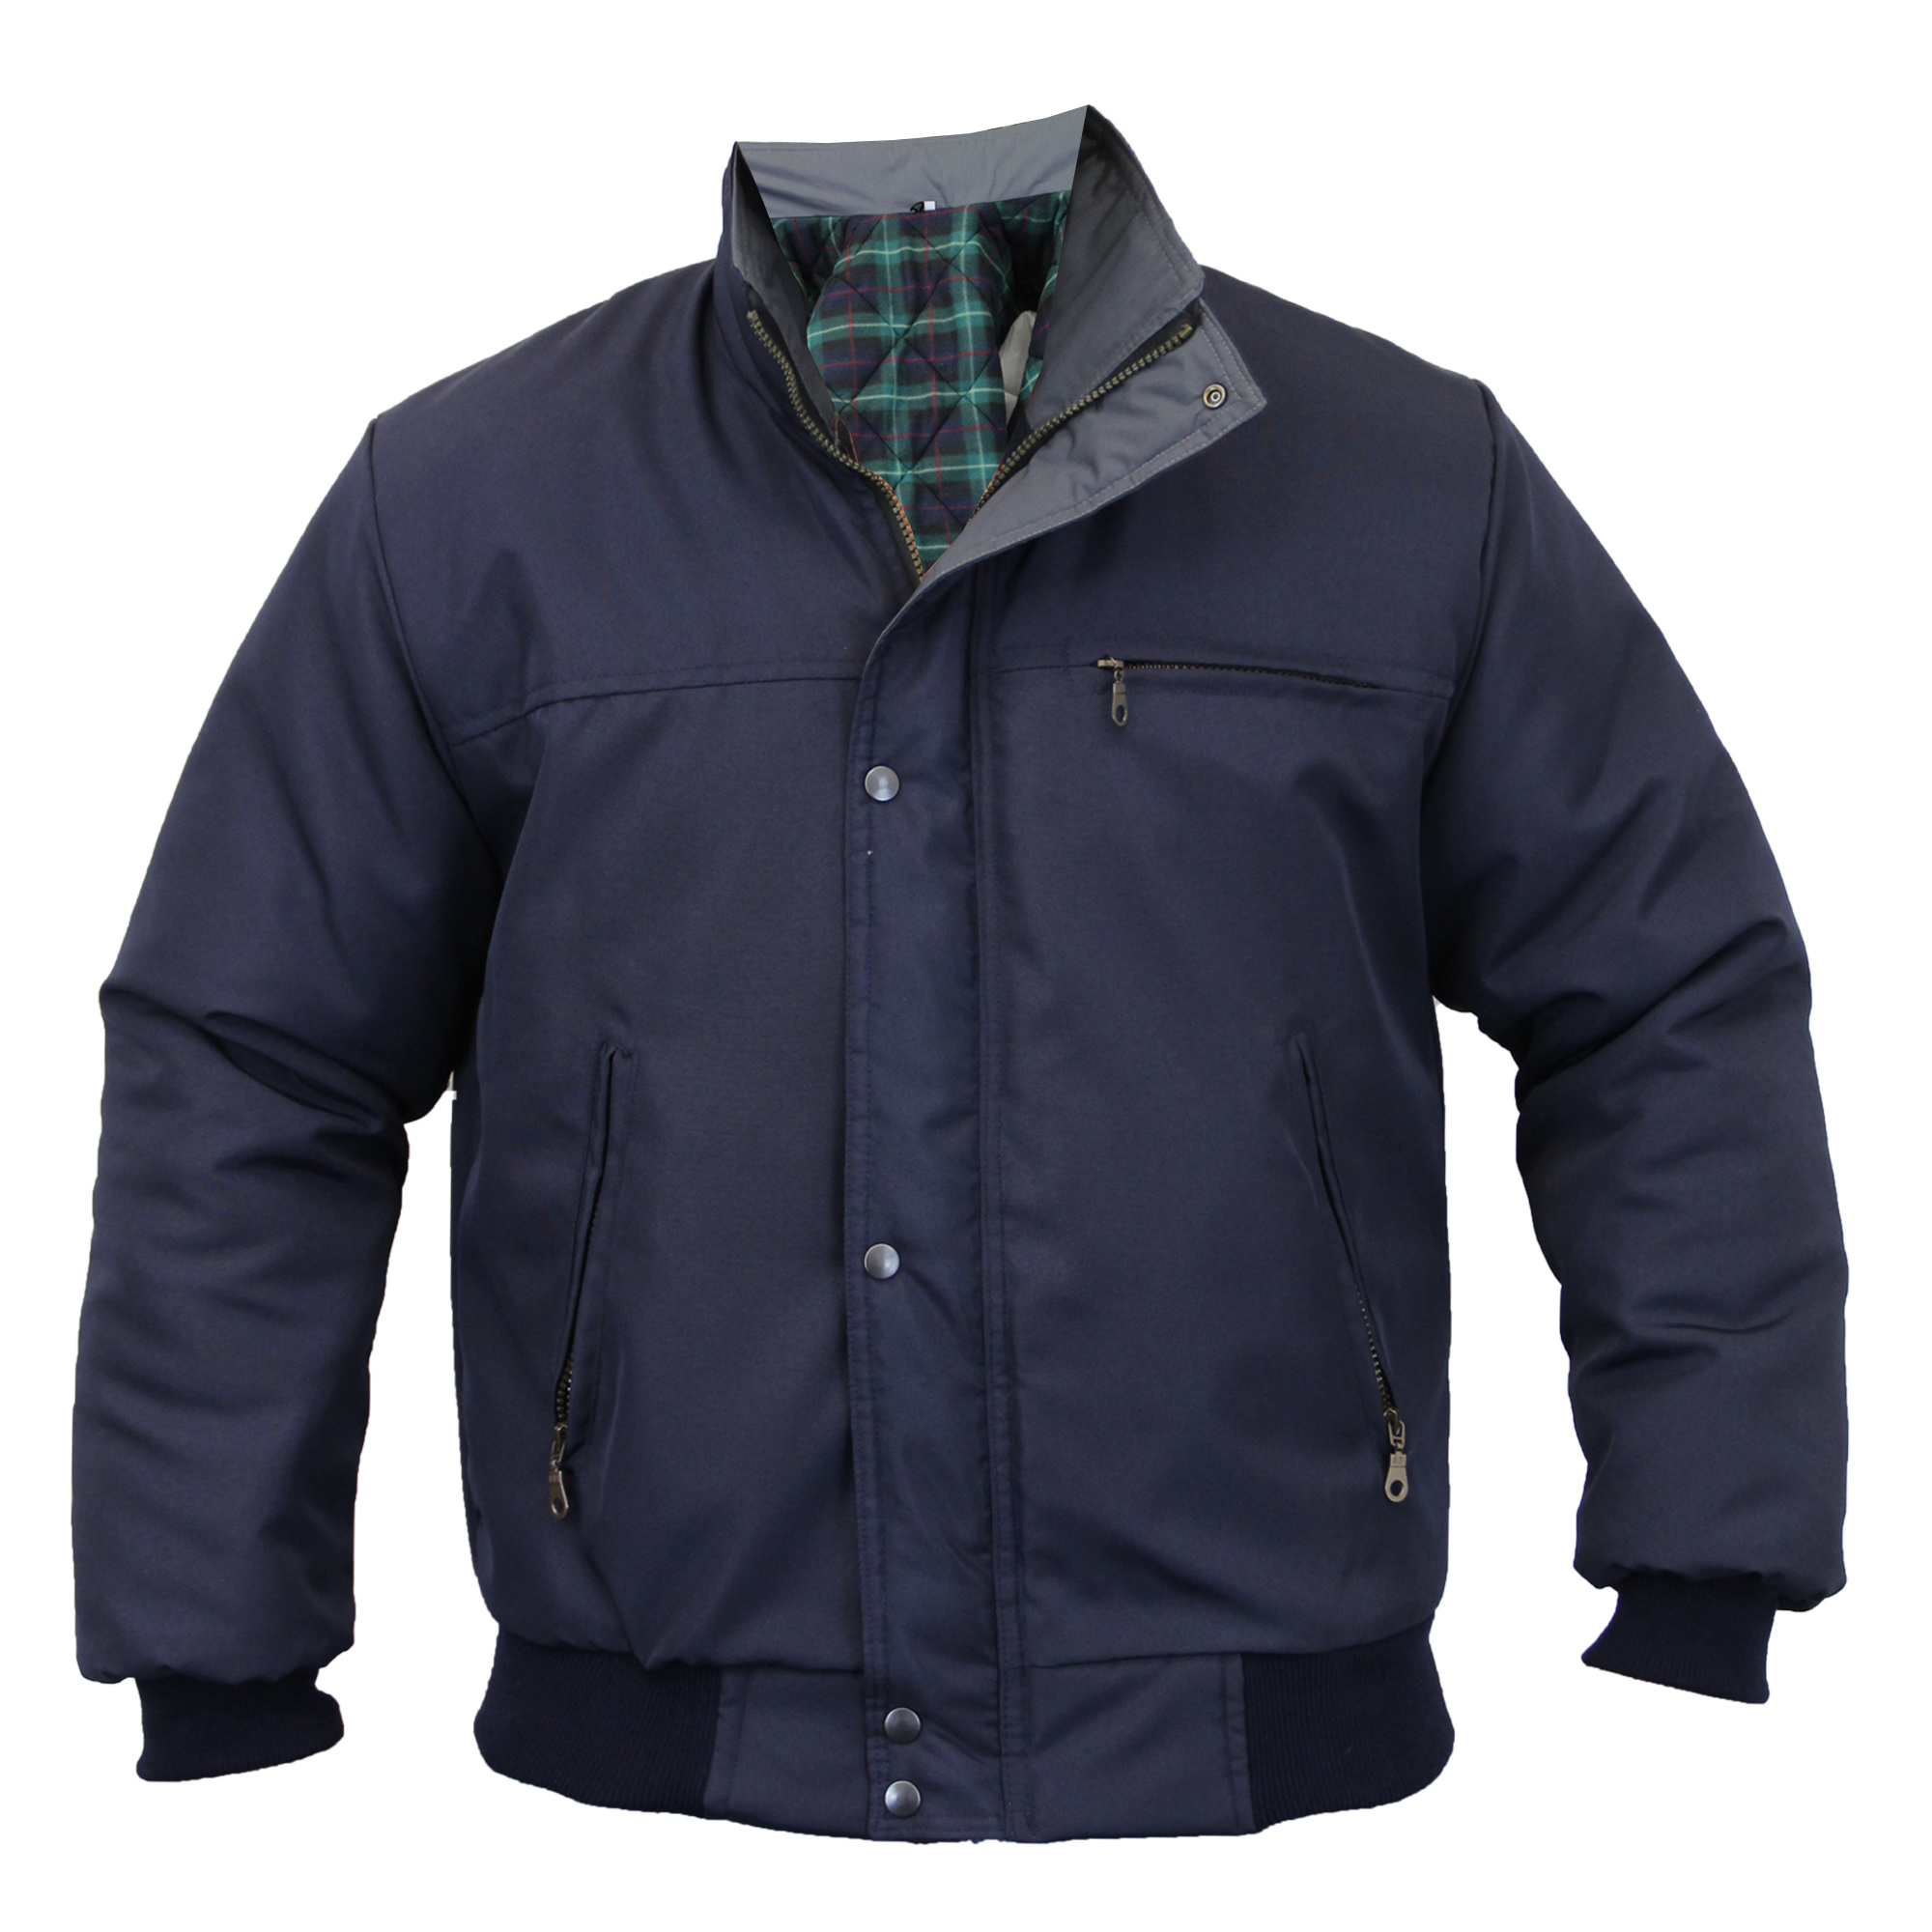 Mens jackets and coats for winter